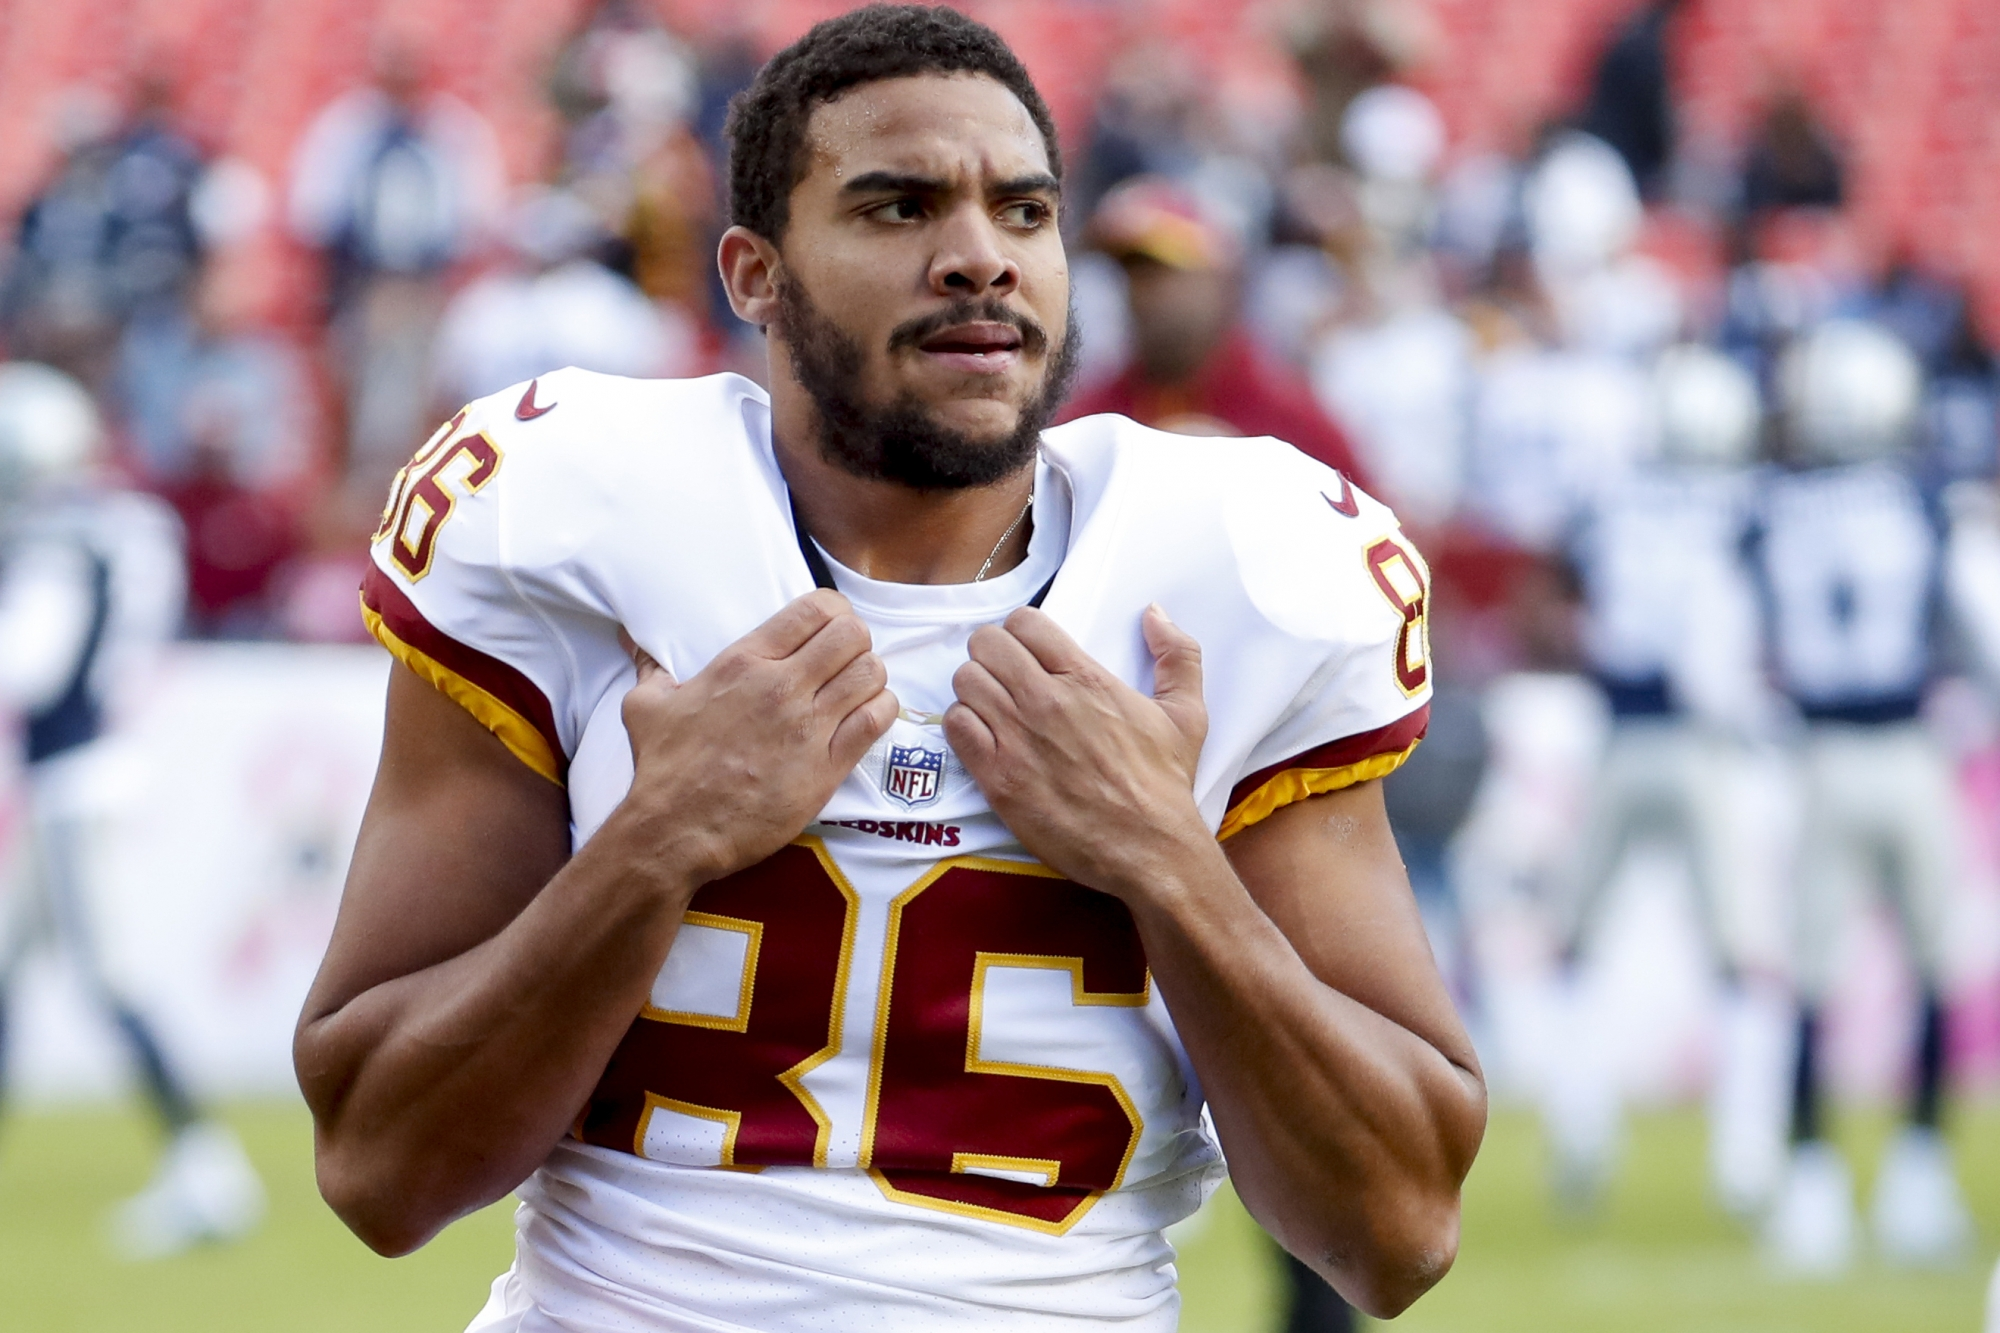 Redskins' Jordan Reed on injured reserve list due to concussion issues |  WTOP